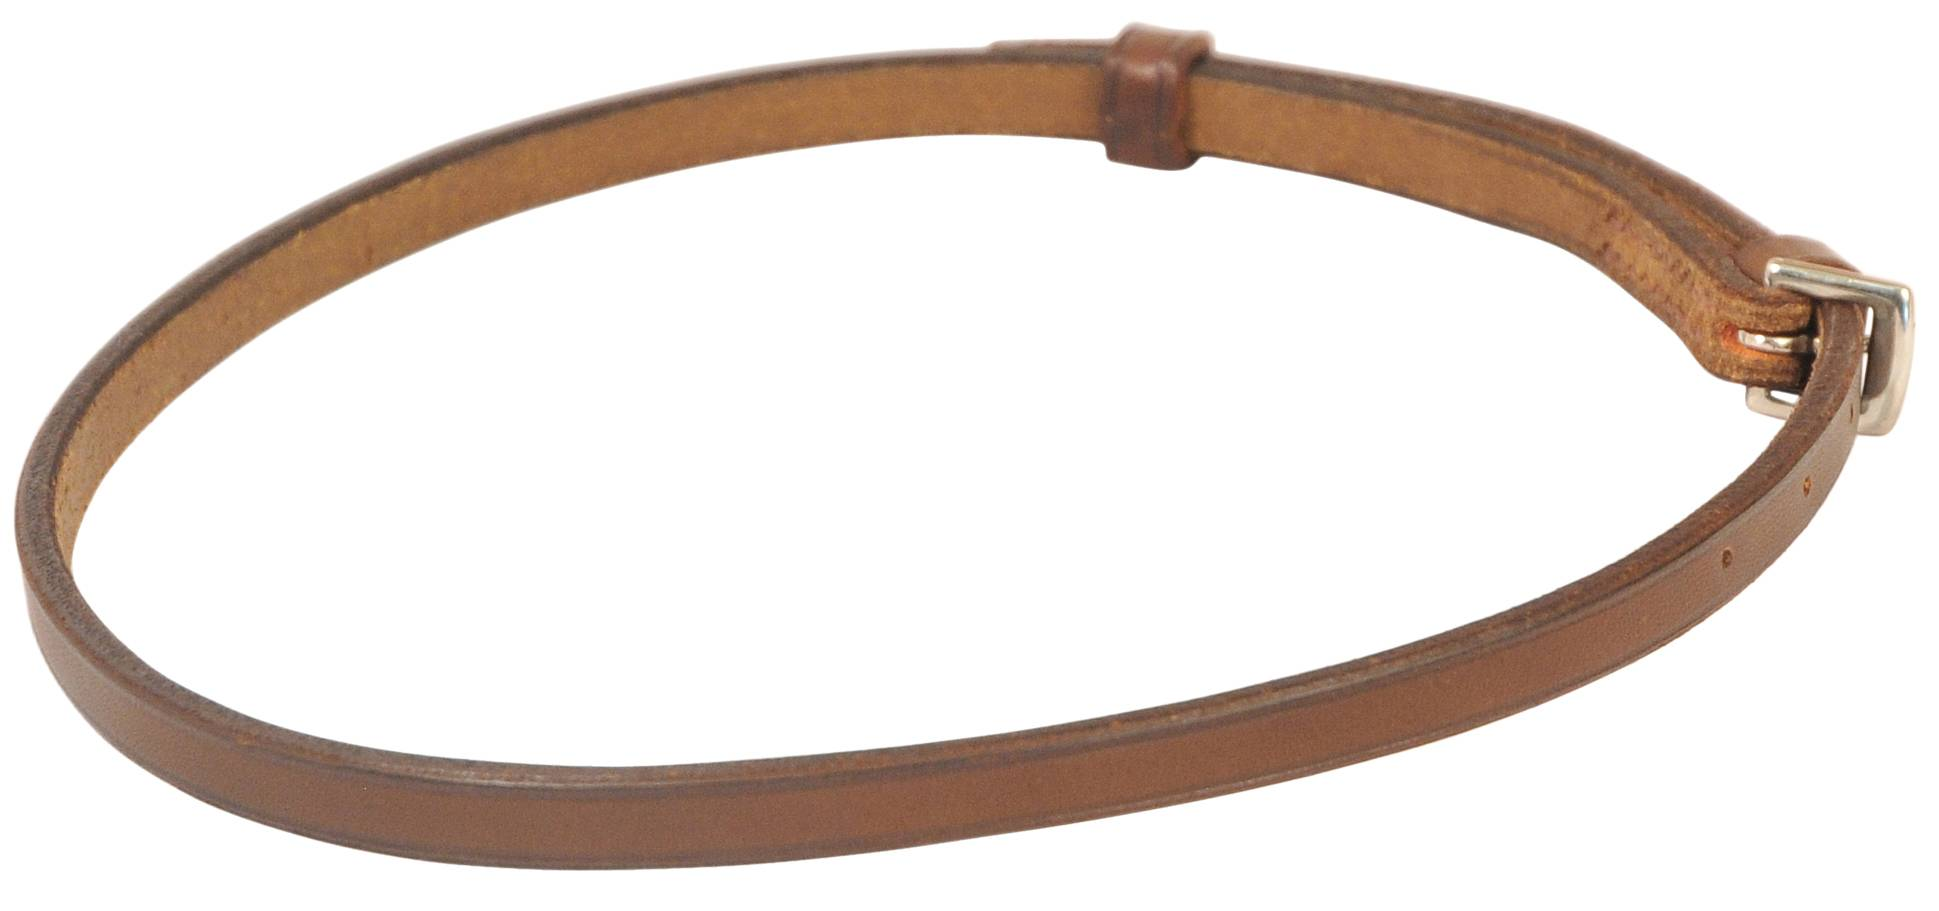 Courbette Leather Flash Strap